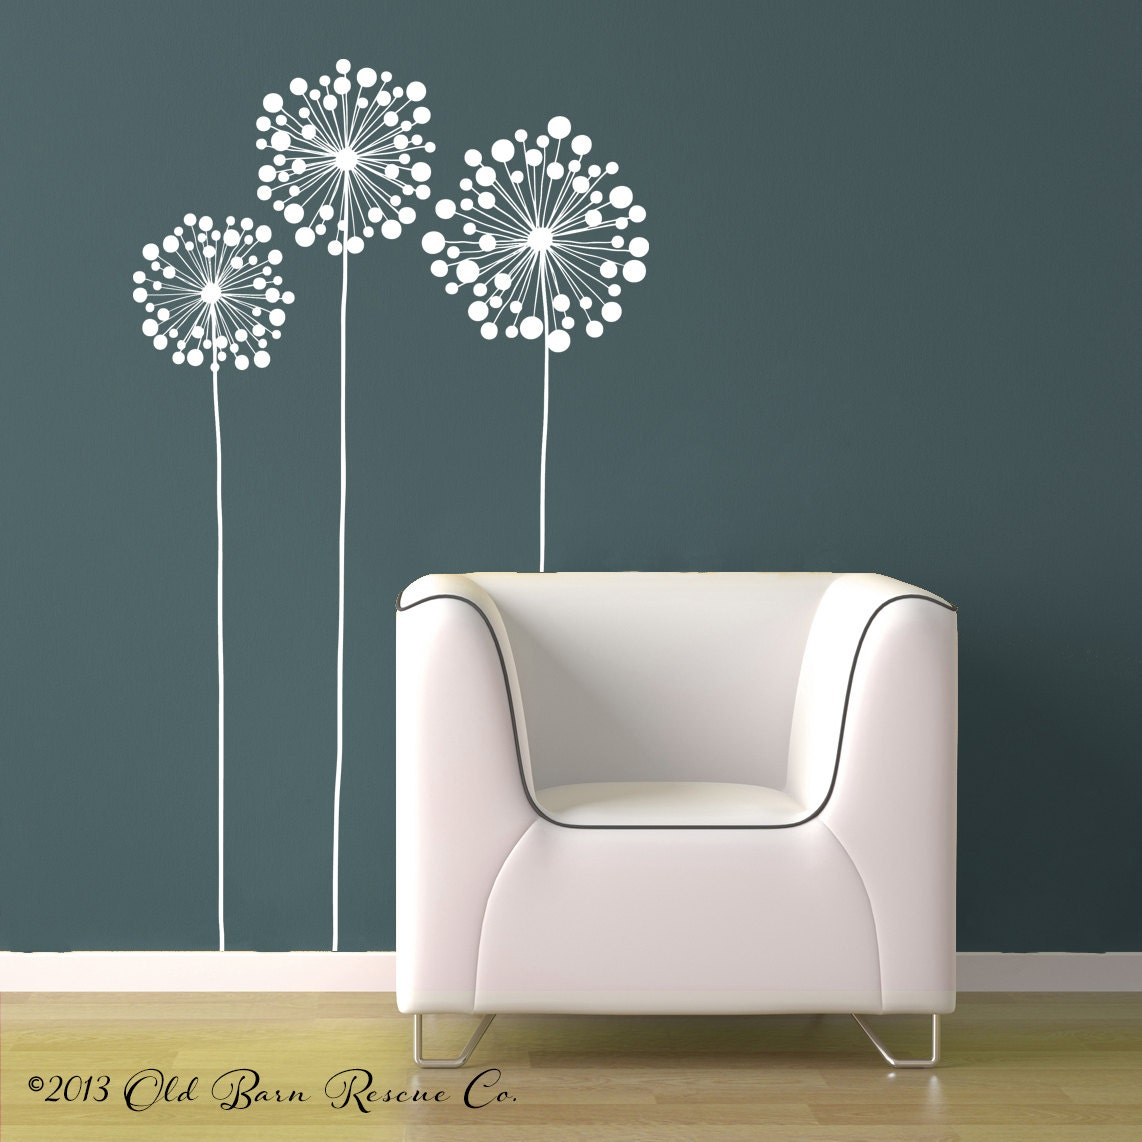 3 Large Flowers Vinyl Wall Decal Design By Oldbarnrescuecompany